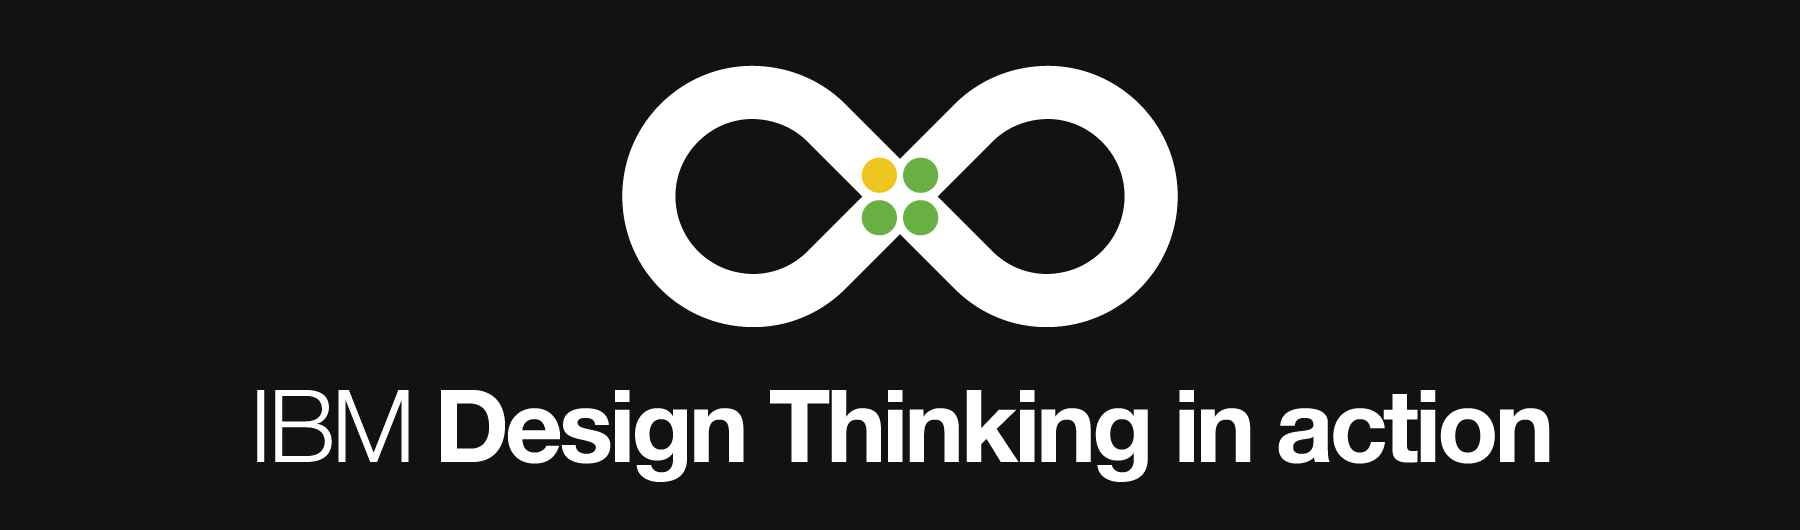 IBM Design Thinking in Action